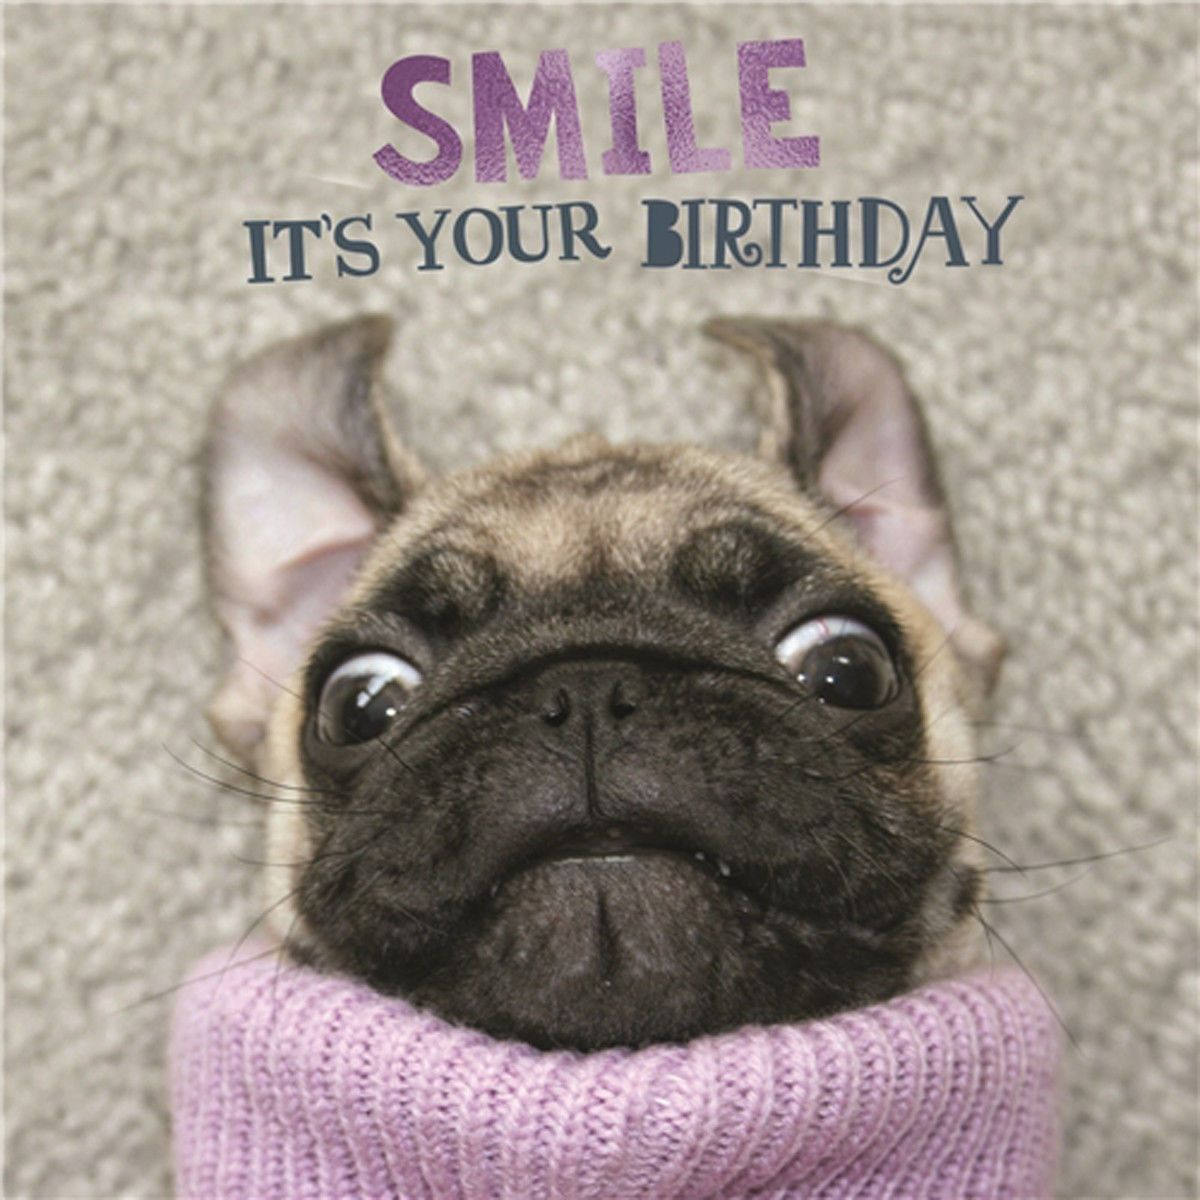 Funny Pug Birthday Card Available At Www Ilovepugs Co Uk Post Worldwide Funnypuppyhappybirthday Happy Birthday Pug Happy Birthday Animals Happy Birthday Funny